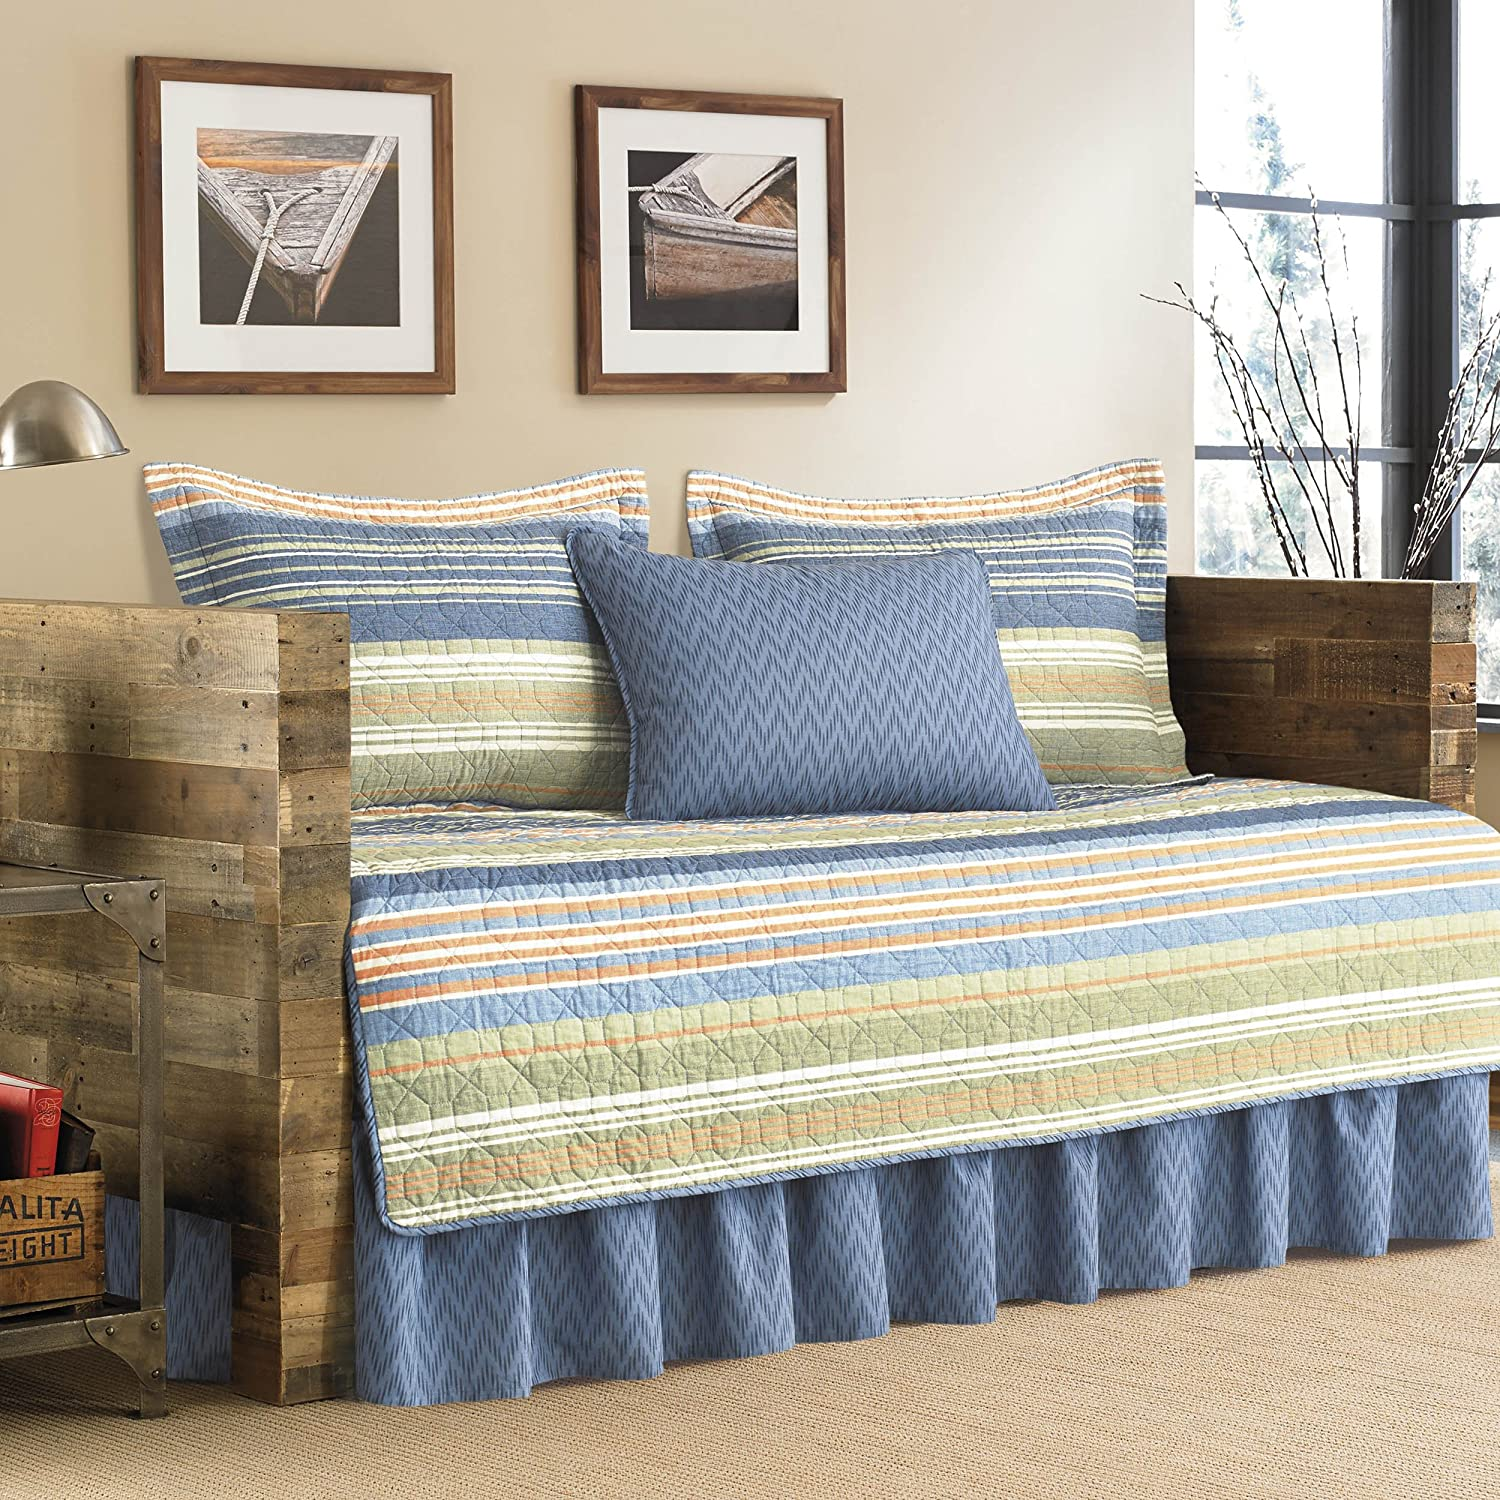 Eddie Bauer 206702 5-Piece Quilted Daybed Set, Twin, Camino Island Revman International